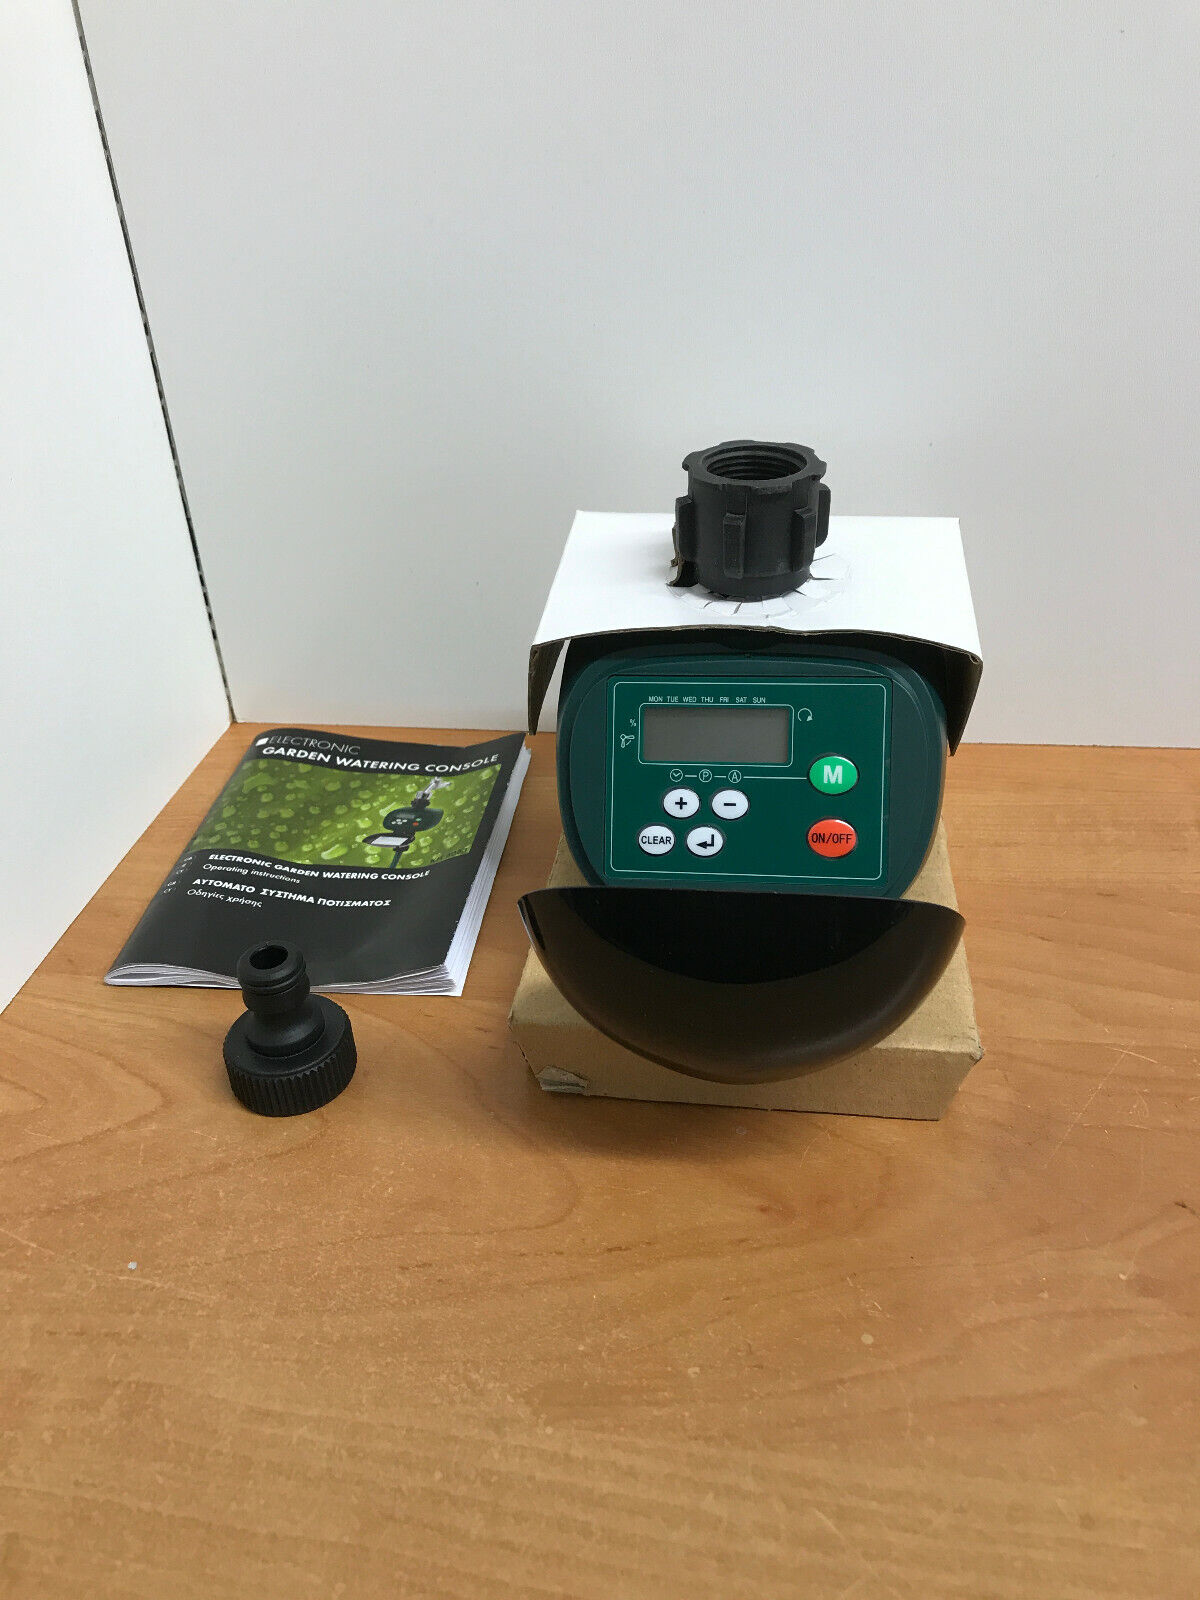 Automatic Watering Control Florabest KH4083 7 Day Watering Computer New Unused